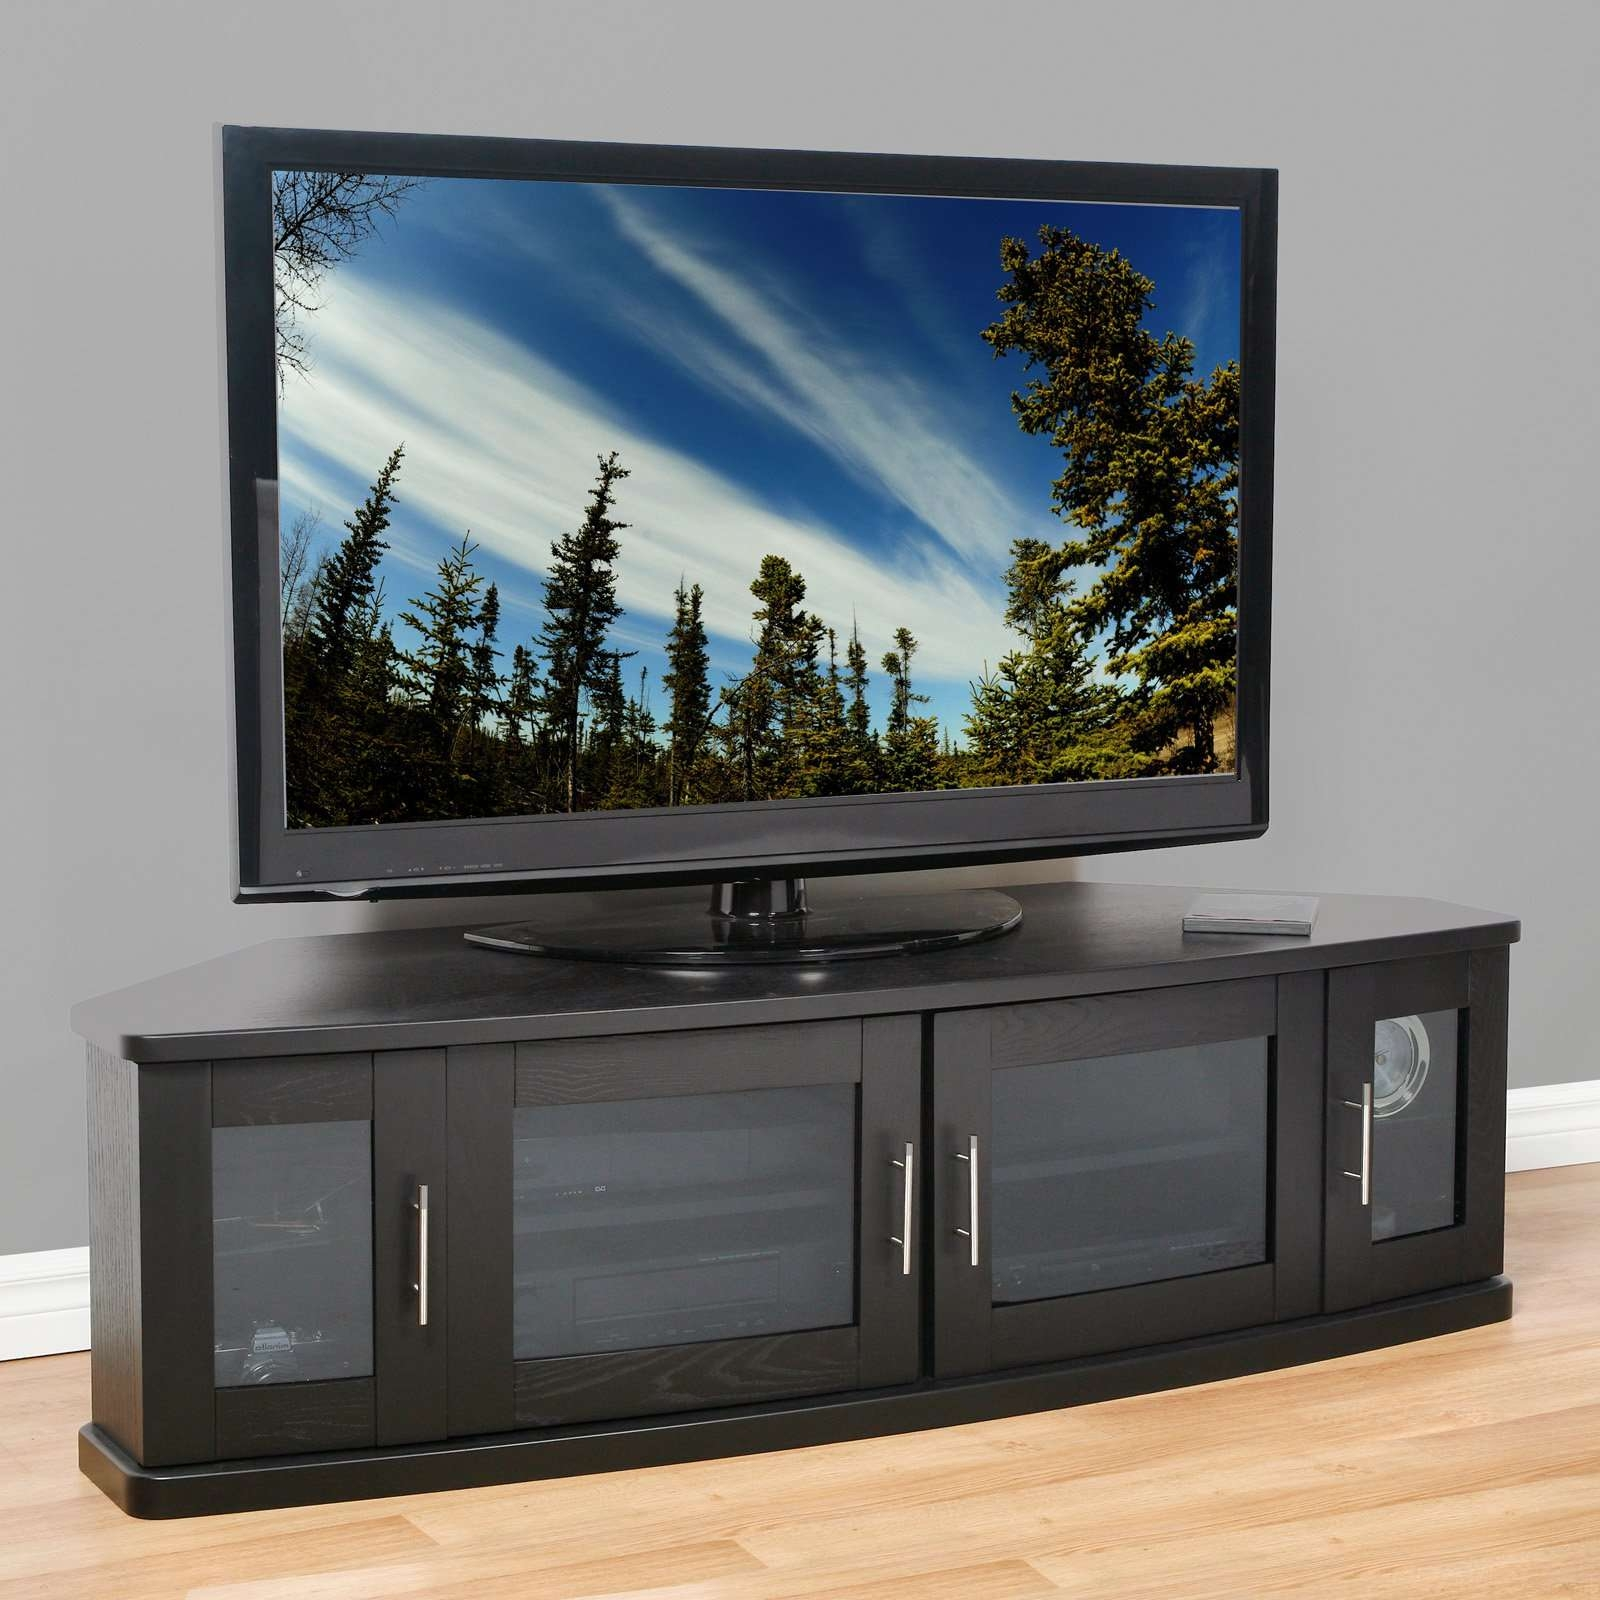 Large Corner Tv Cabinet With 4 Glass Doors And Silver Handle Regarding Corner Tv Cabinets With Glass Doors (View 8 of 20)